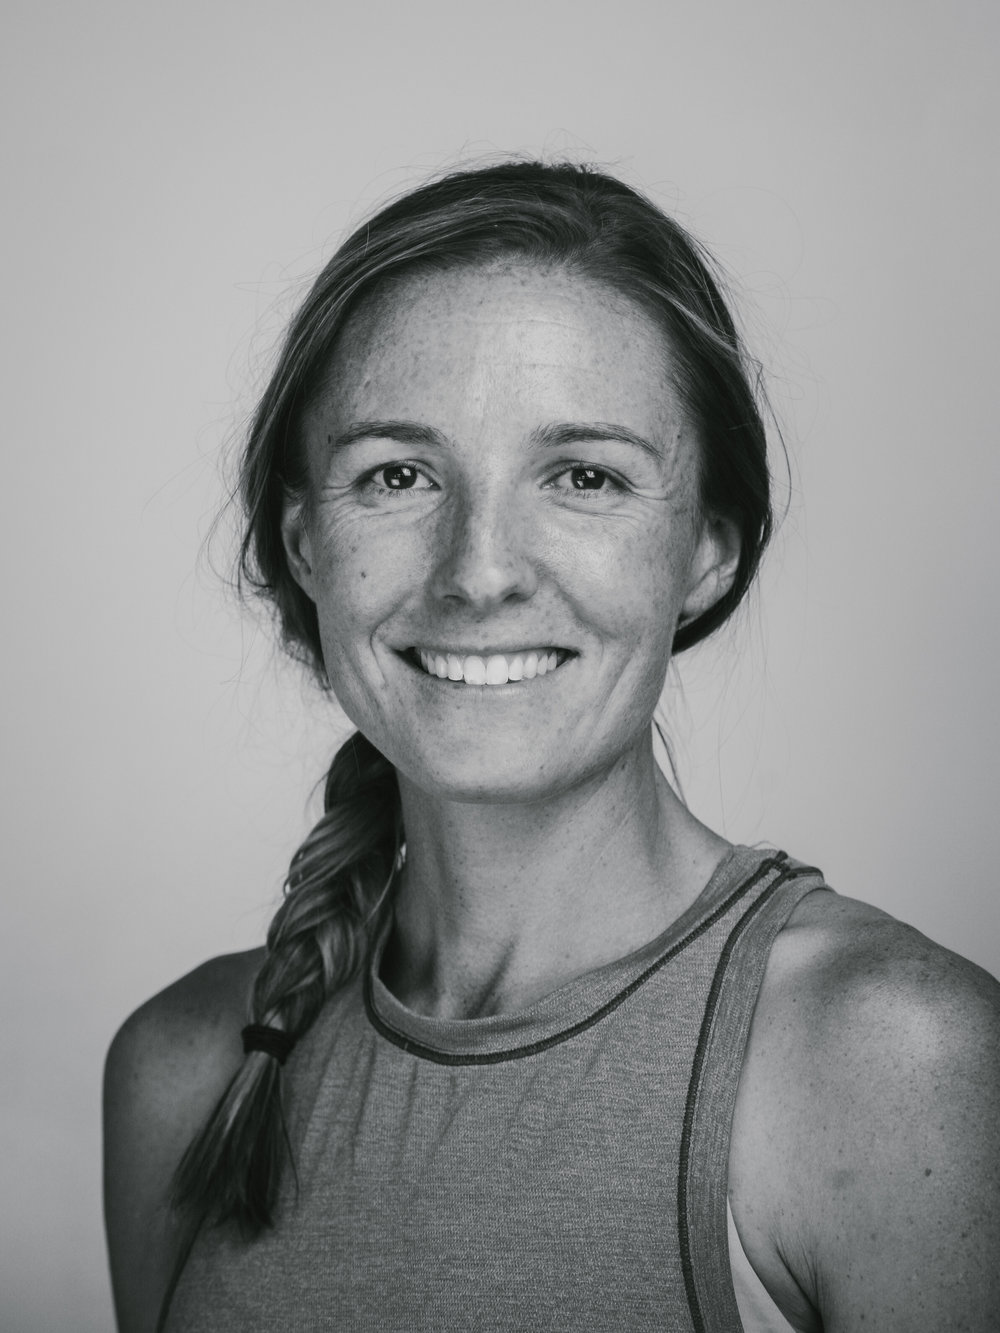 Sarah Betts - I teach: Yoga, TRX, & Seek Circuits.I co-founded SEEK with my partner, Alex Zuhl, and am so honored to see what what it brings to peoples lives every day. Its a true community of friends - old and new - positive vibes, and hard work. Words I live by: rock your best self, and don't be a dick while doing so. Kindness looks good on everyone.Beats I move to: is it possible that there's too many to name? I make new playlists for every class I teach. Find me on Spotify and you'll get the gist....What I live for: Adventures - time outside on skis, bikes, trails, and rivers with people and pups I love. Good food - all of it please, especially kale, noodle soup, homegrown tomatoes, and chocolate ice cream. Community - that at home feeling when you connect with people that value you, appreciate all your quirks, never talk behind your back, and always show up in your support. Love - ahhhhh, cuz I am a total cheese and I just love love.